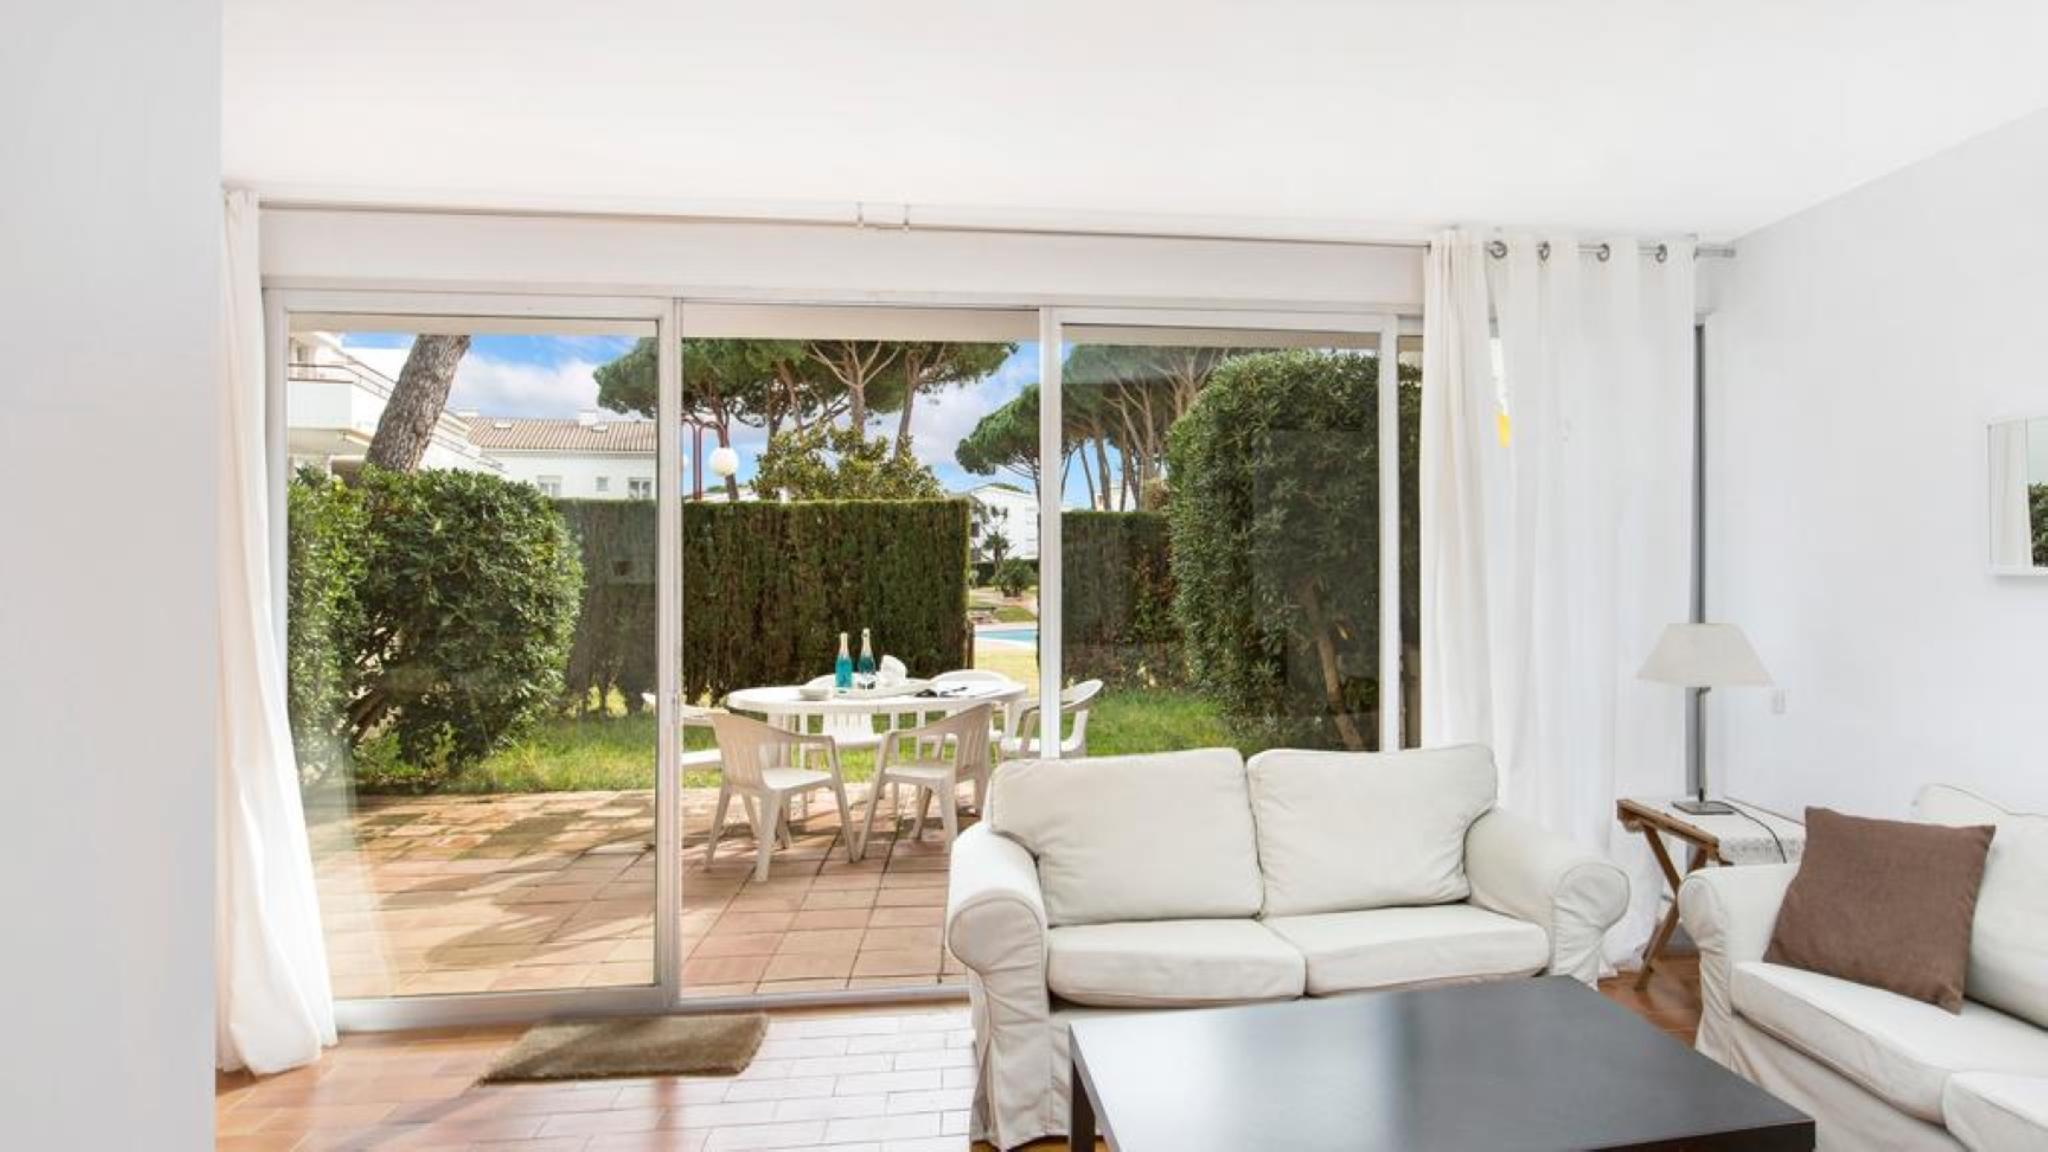 104674   Apartment In Palafrugell